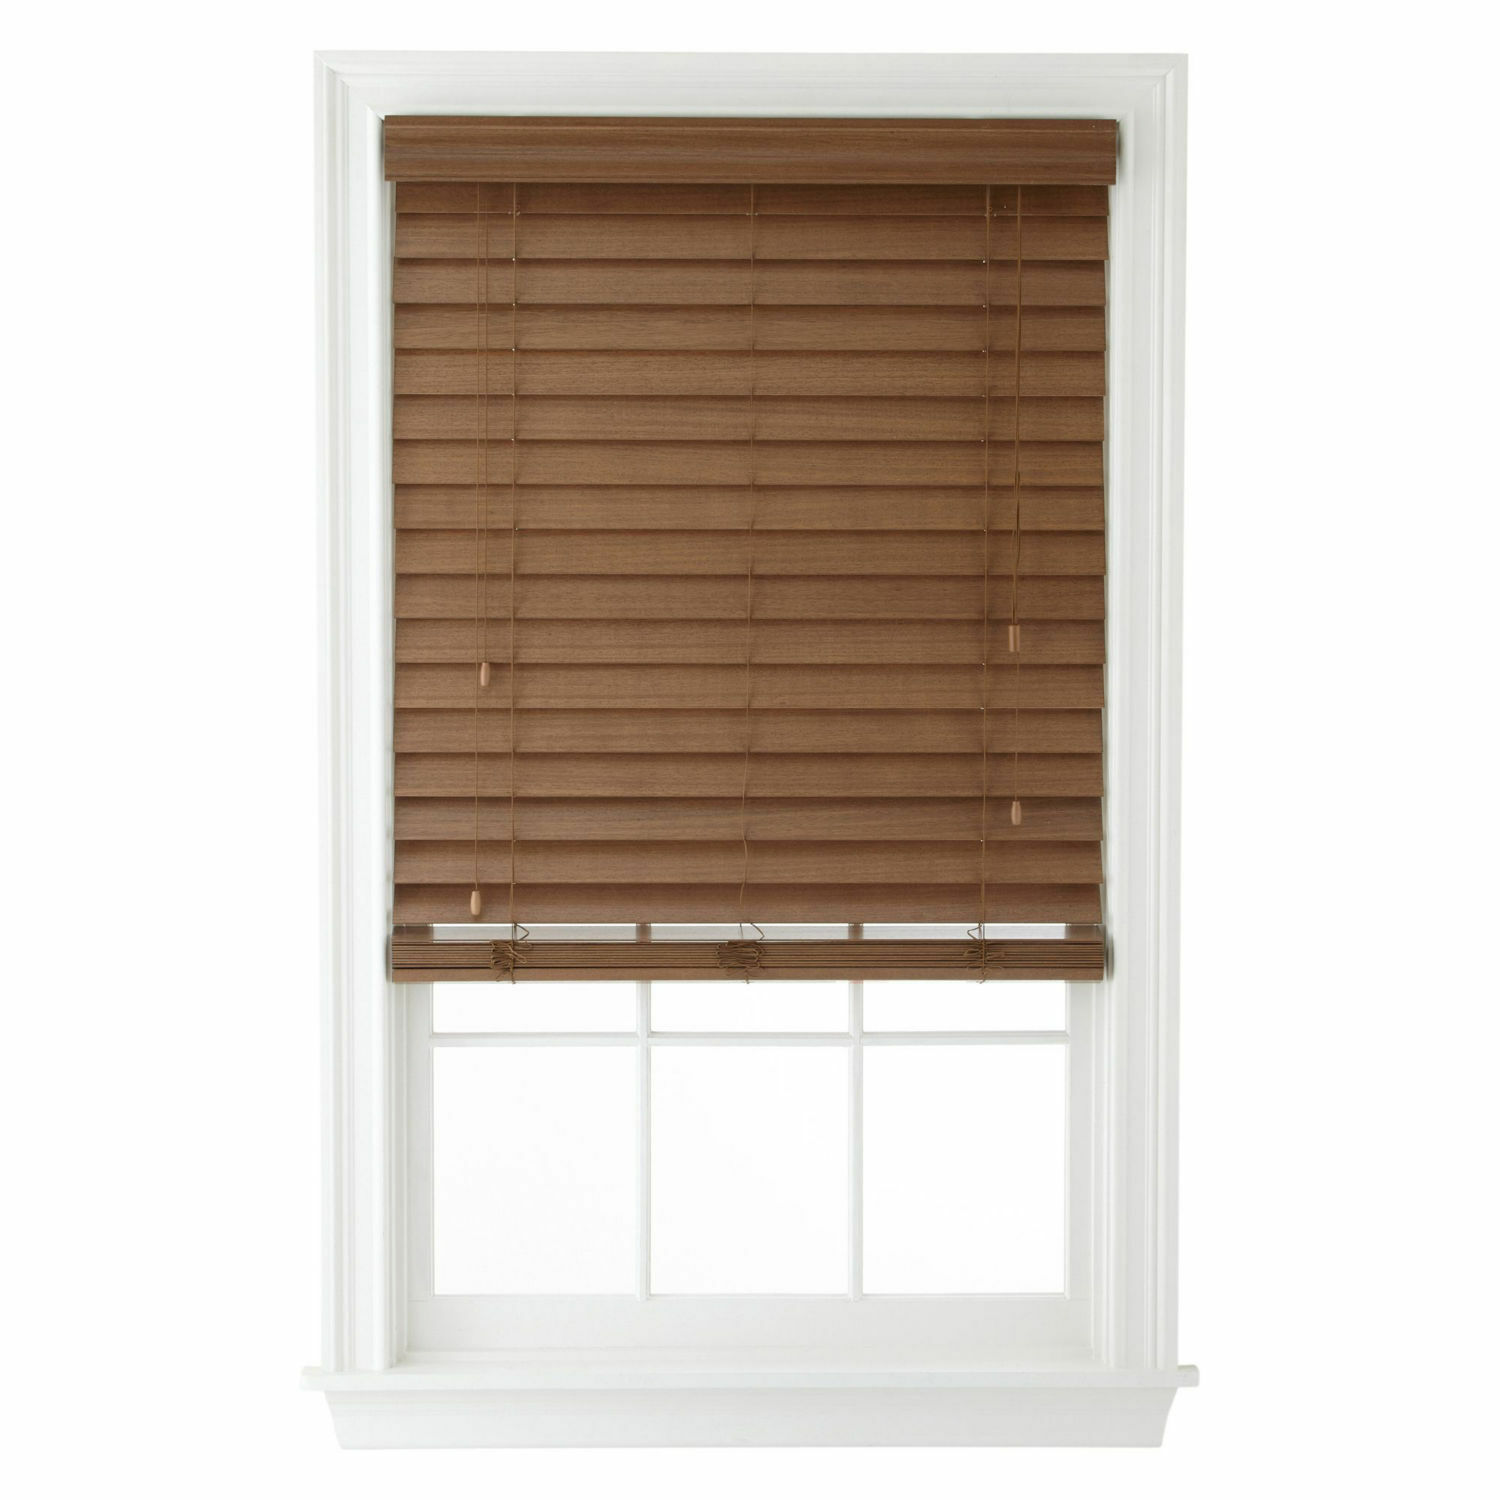 Shutter Look Real Wood Blinds - 4 Colors - Free Shipping